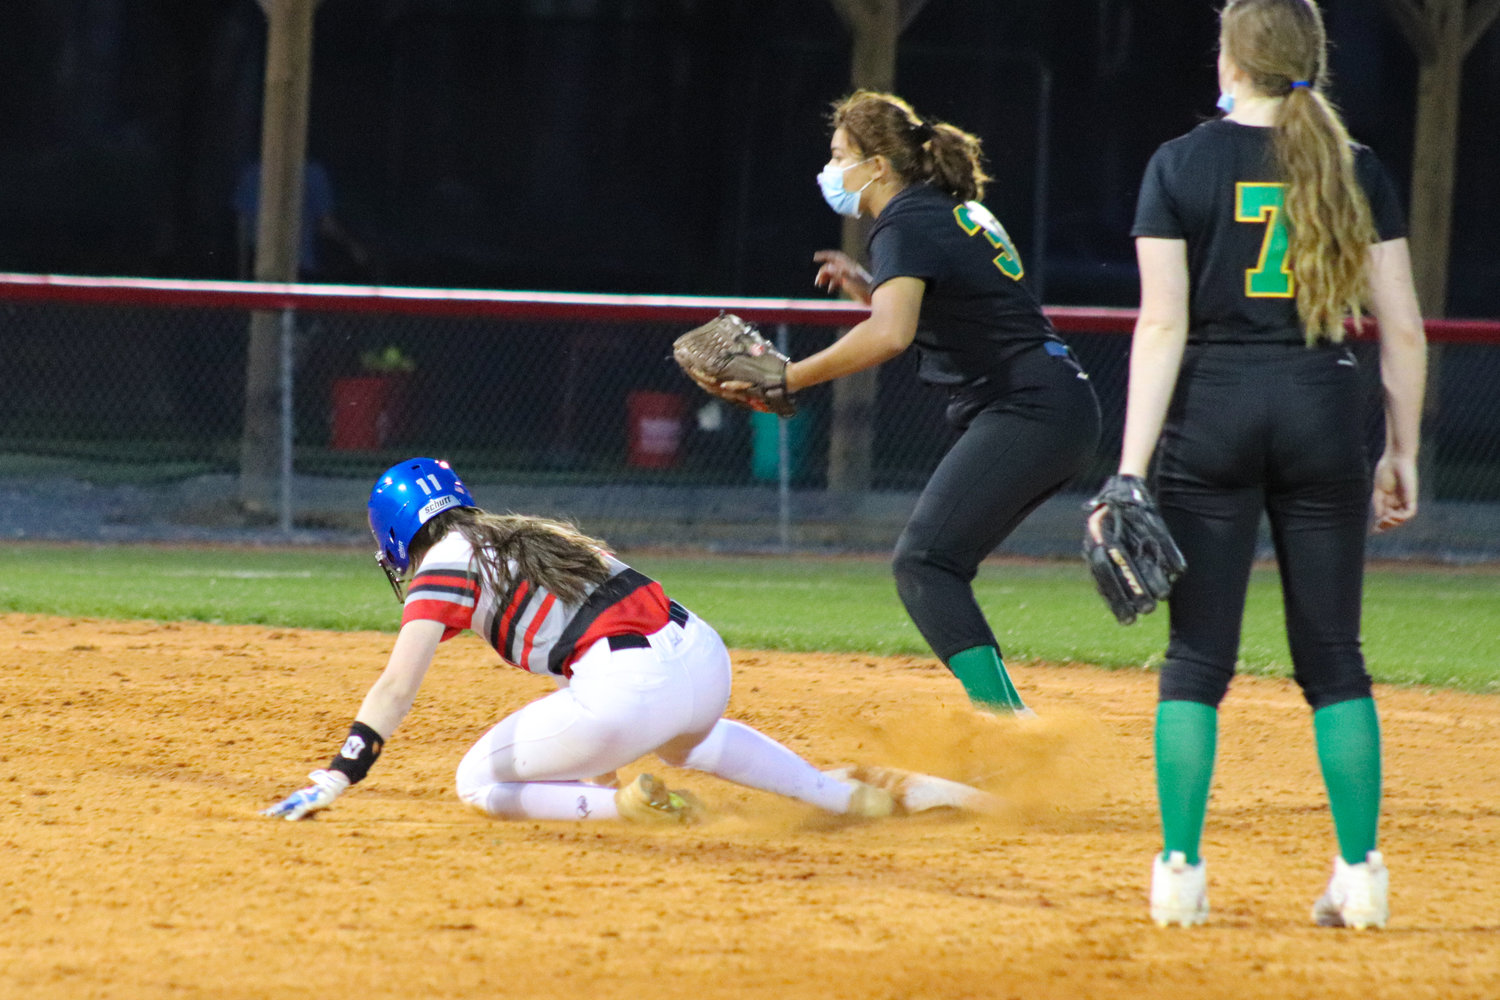 Chatham Central junior Lindsey Johnson (red and white) slides into second base in her team's 12-0 victory over North Rowan on March 30. She went 1-for-2 on the night.